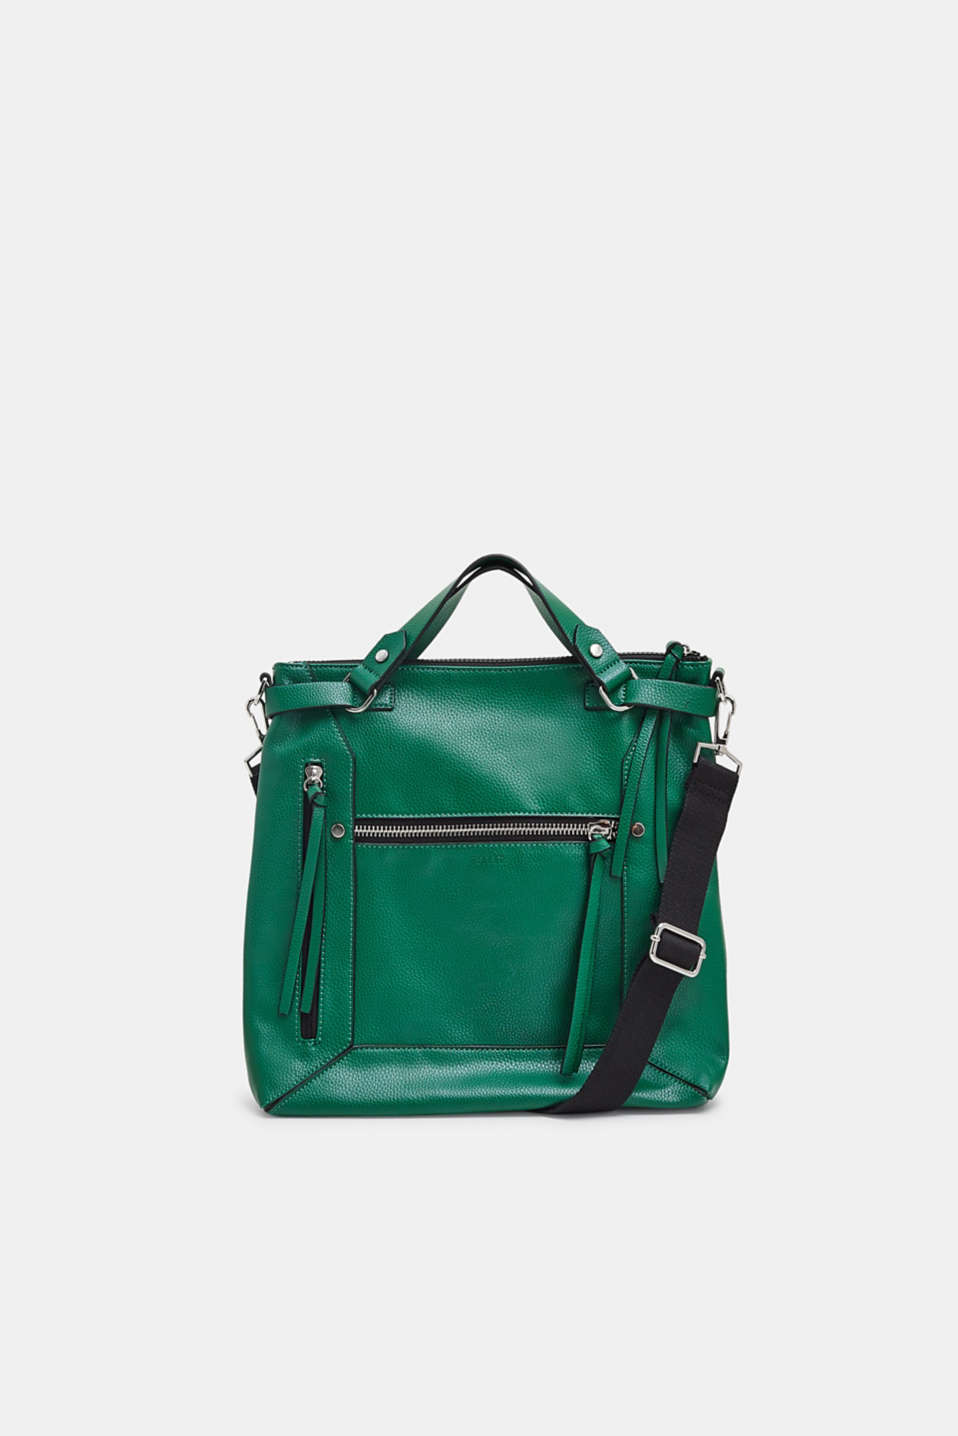 Esprit - Tote Bag in Leder-Optik